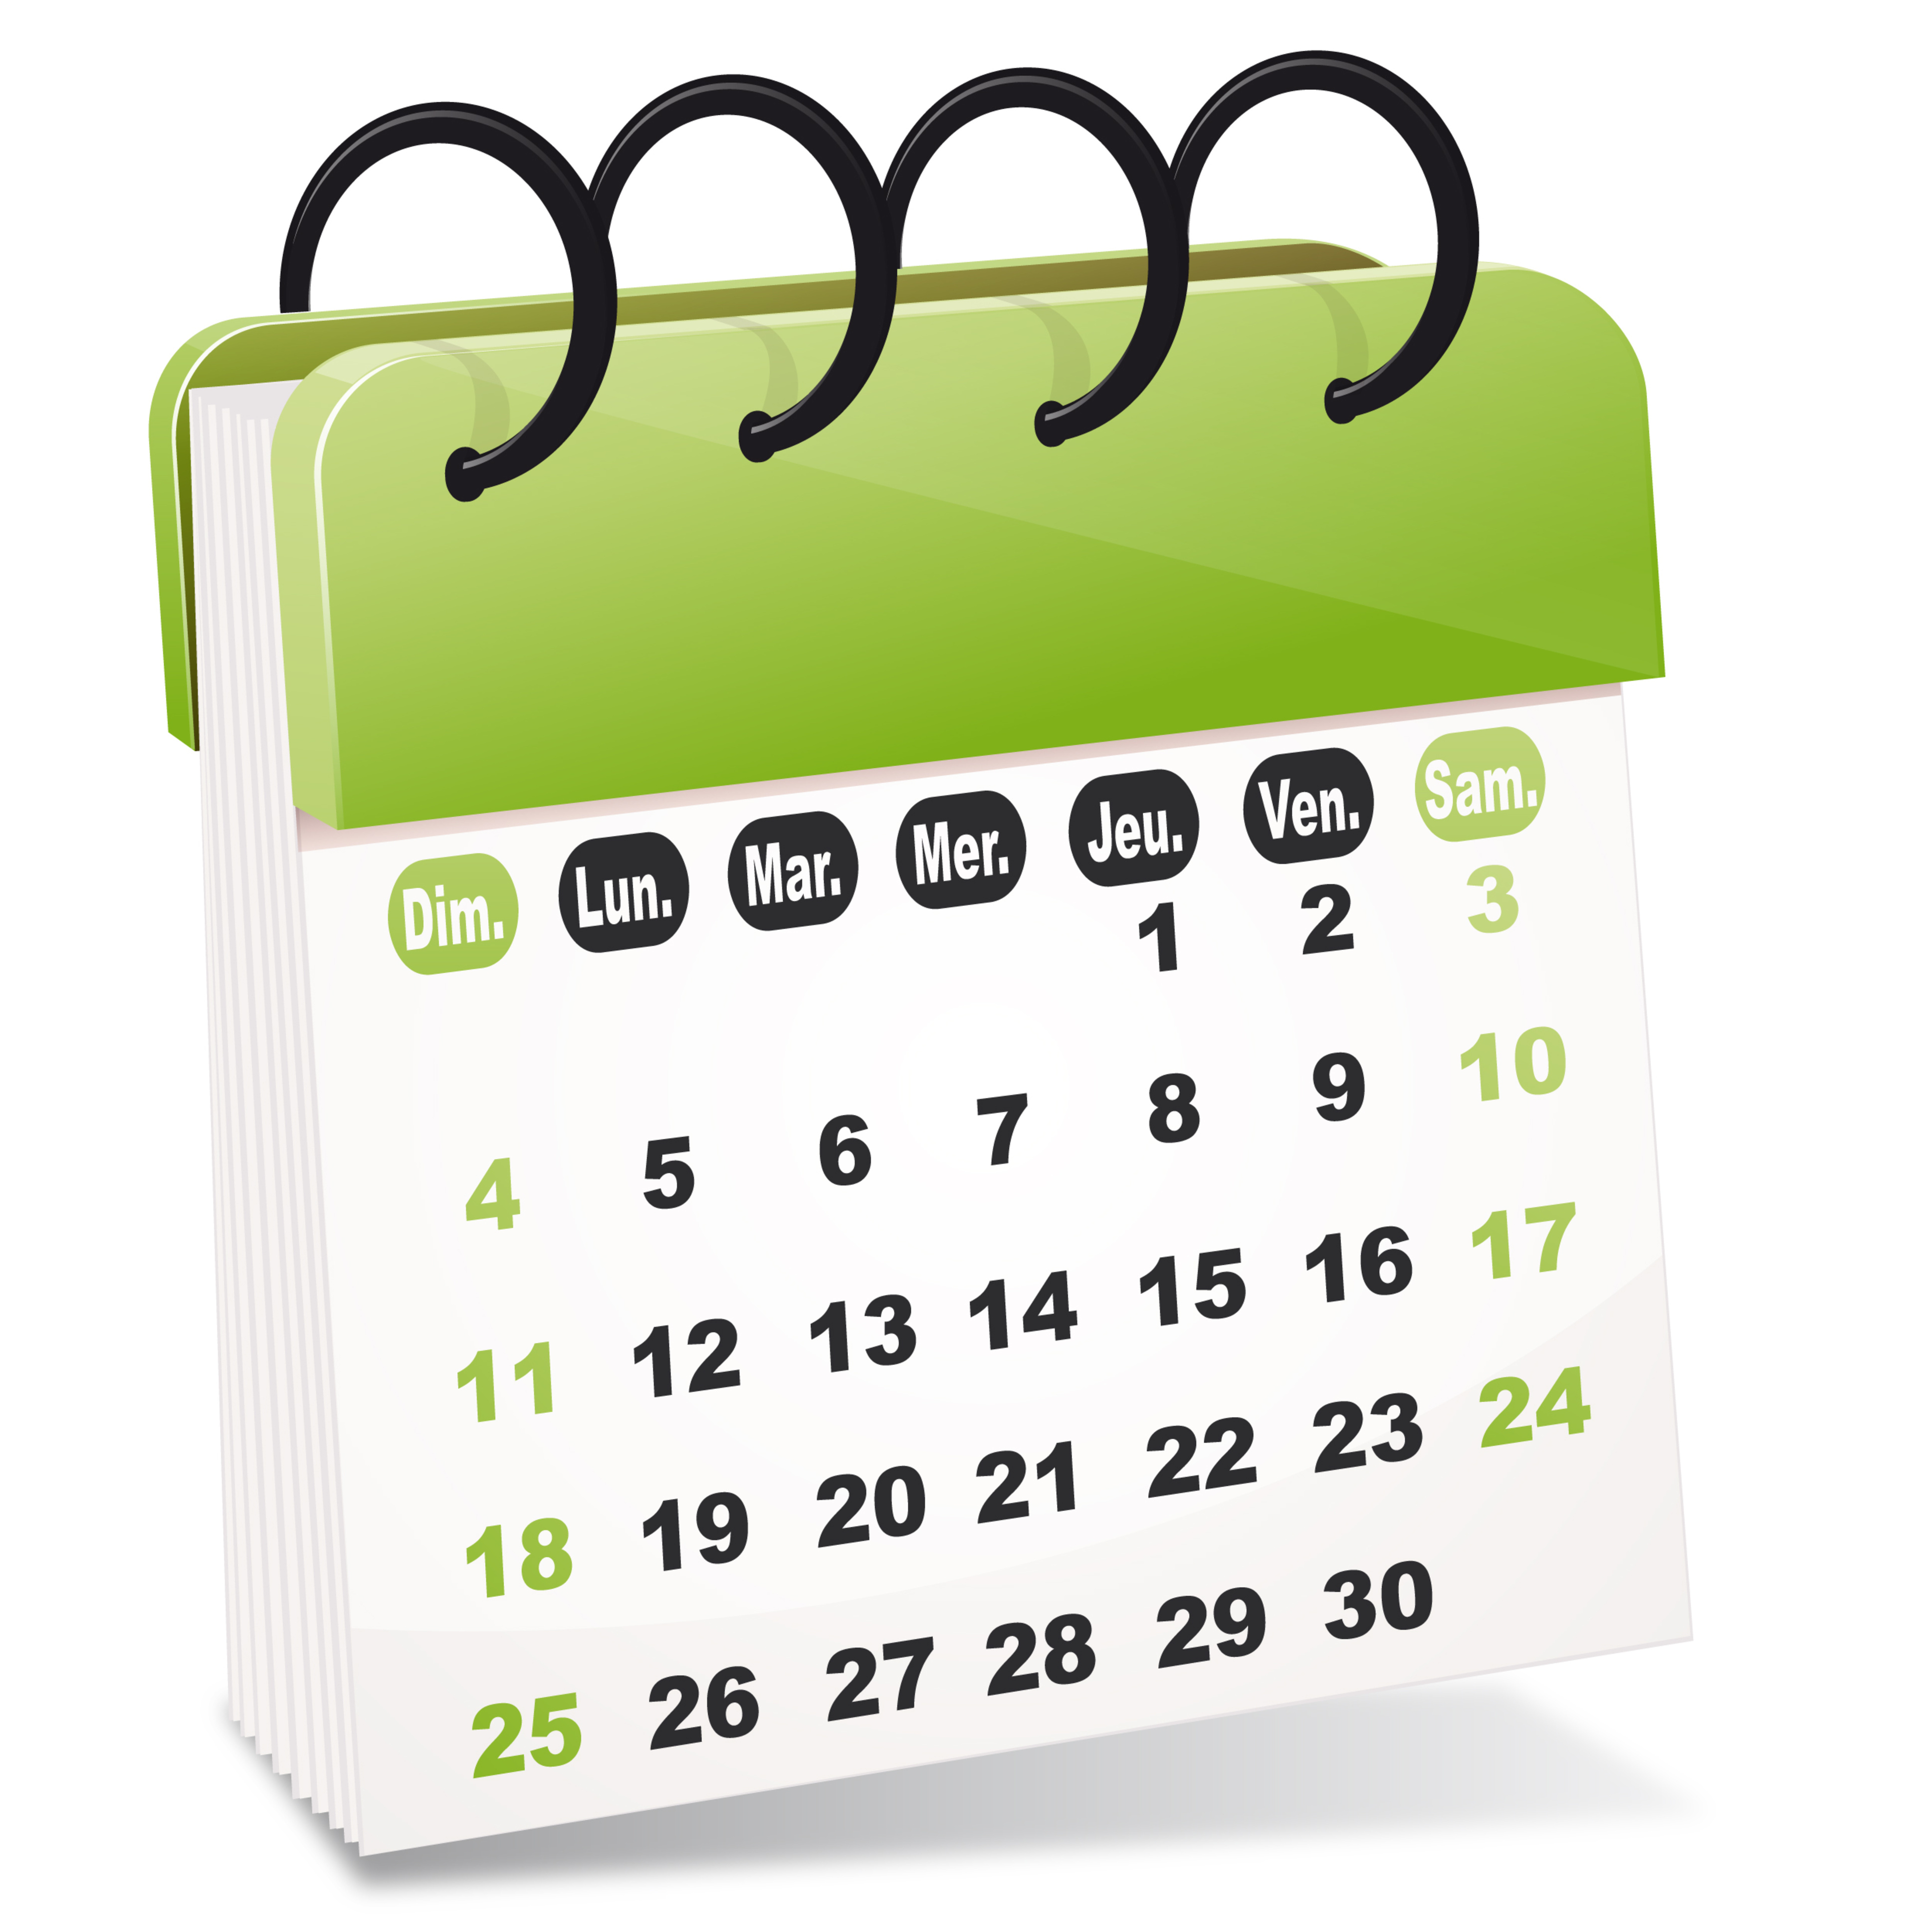 Calendrier 2017 des formations